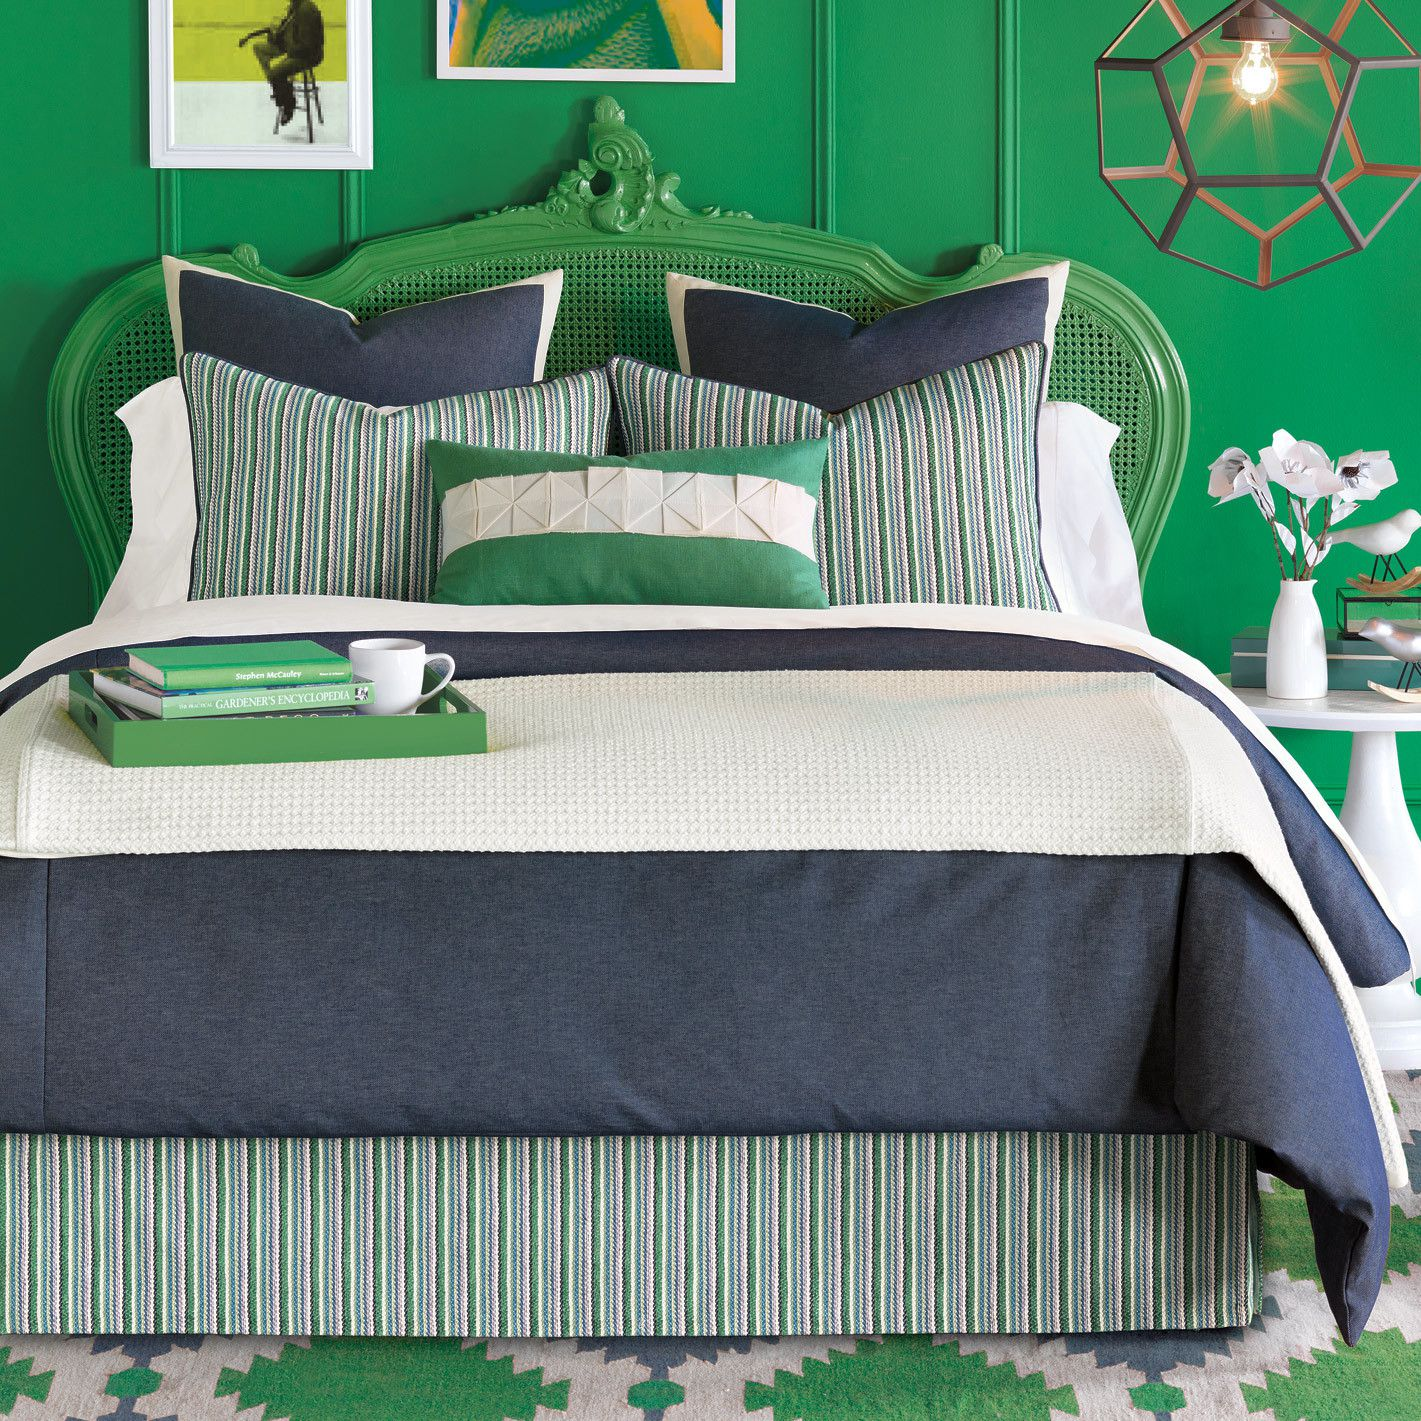 Superbe Complete Traditional Green Bed With Minimalist Teen Boy Bedding Inside  Green Themed Bedroom Using White Side